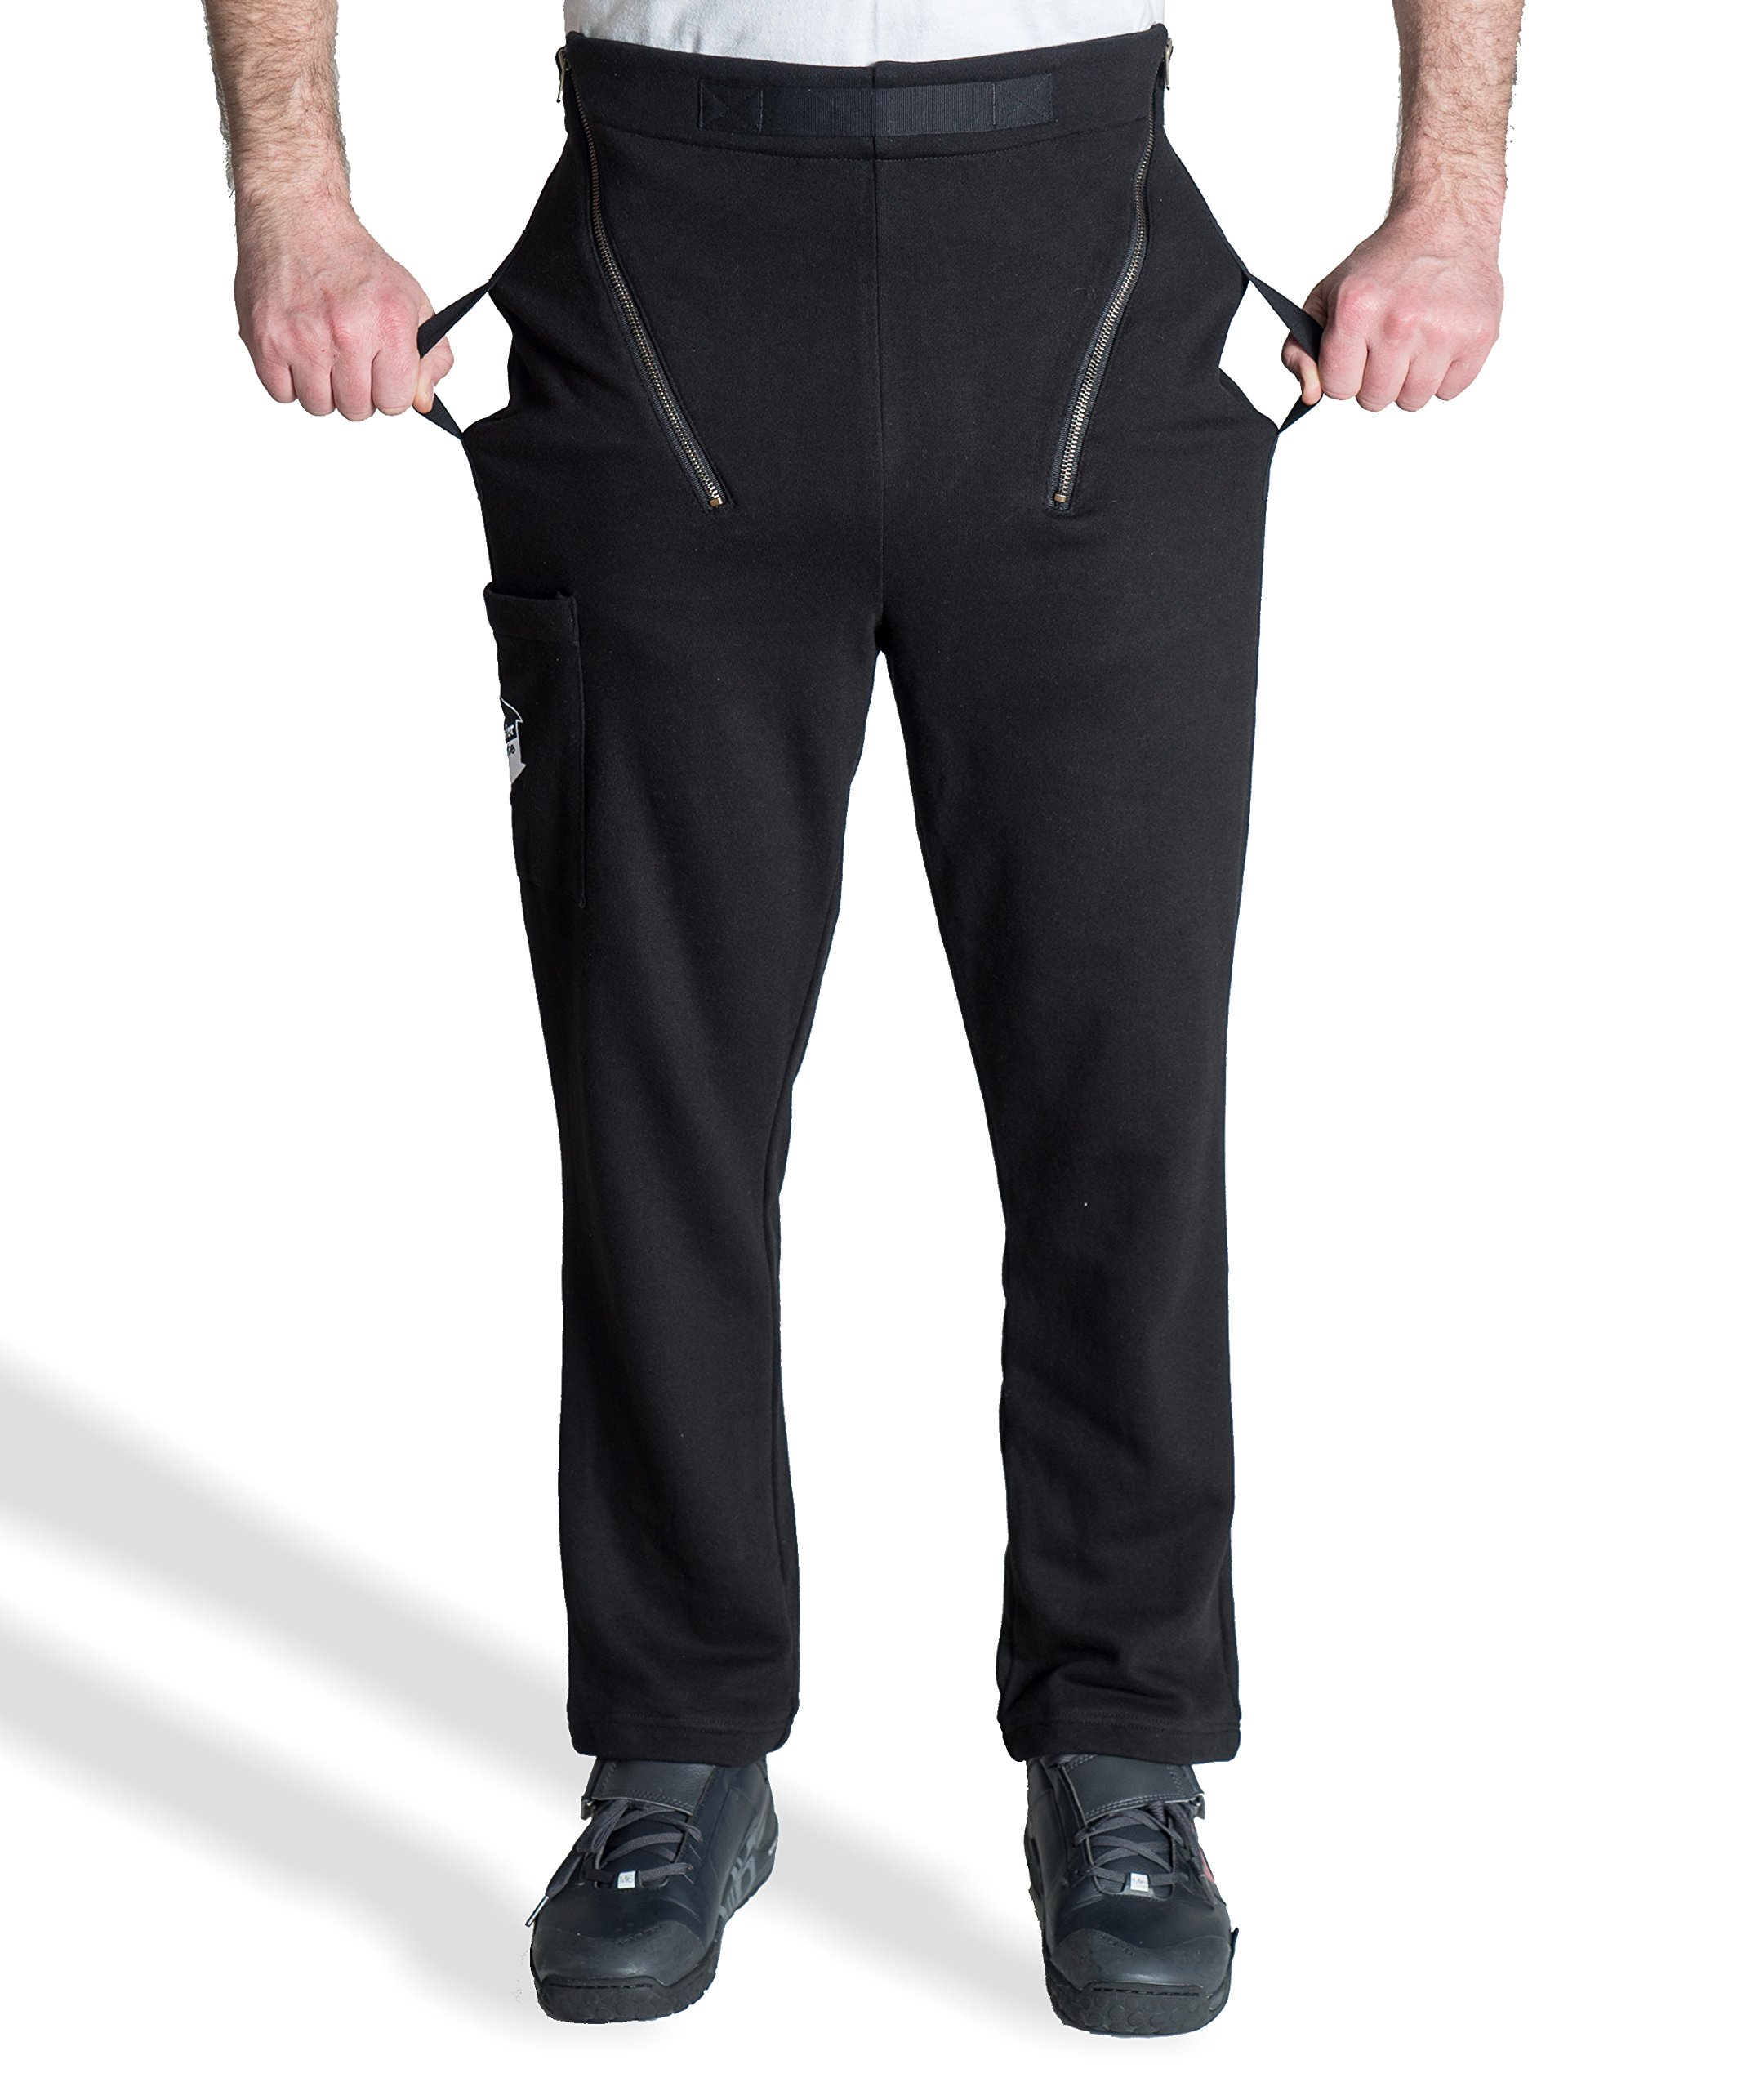 "TransferPants - Transfer Disabled Patient Easily and Safely - Fleece, Black (XL (40-42"" Waist))"